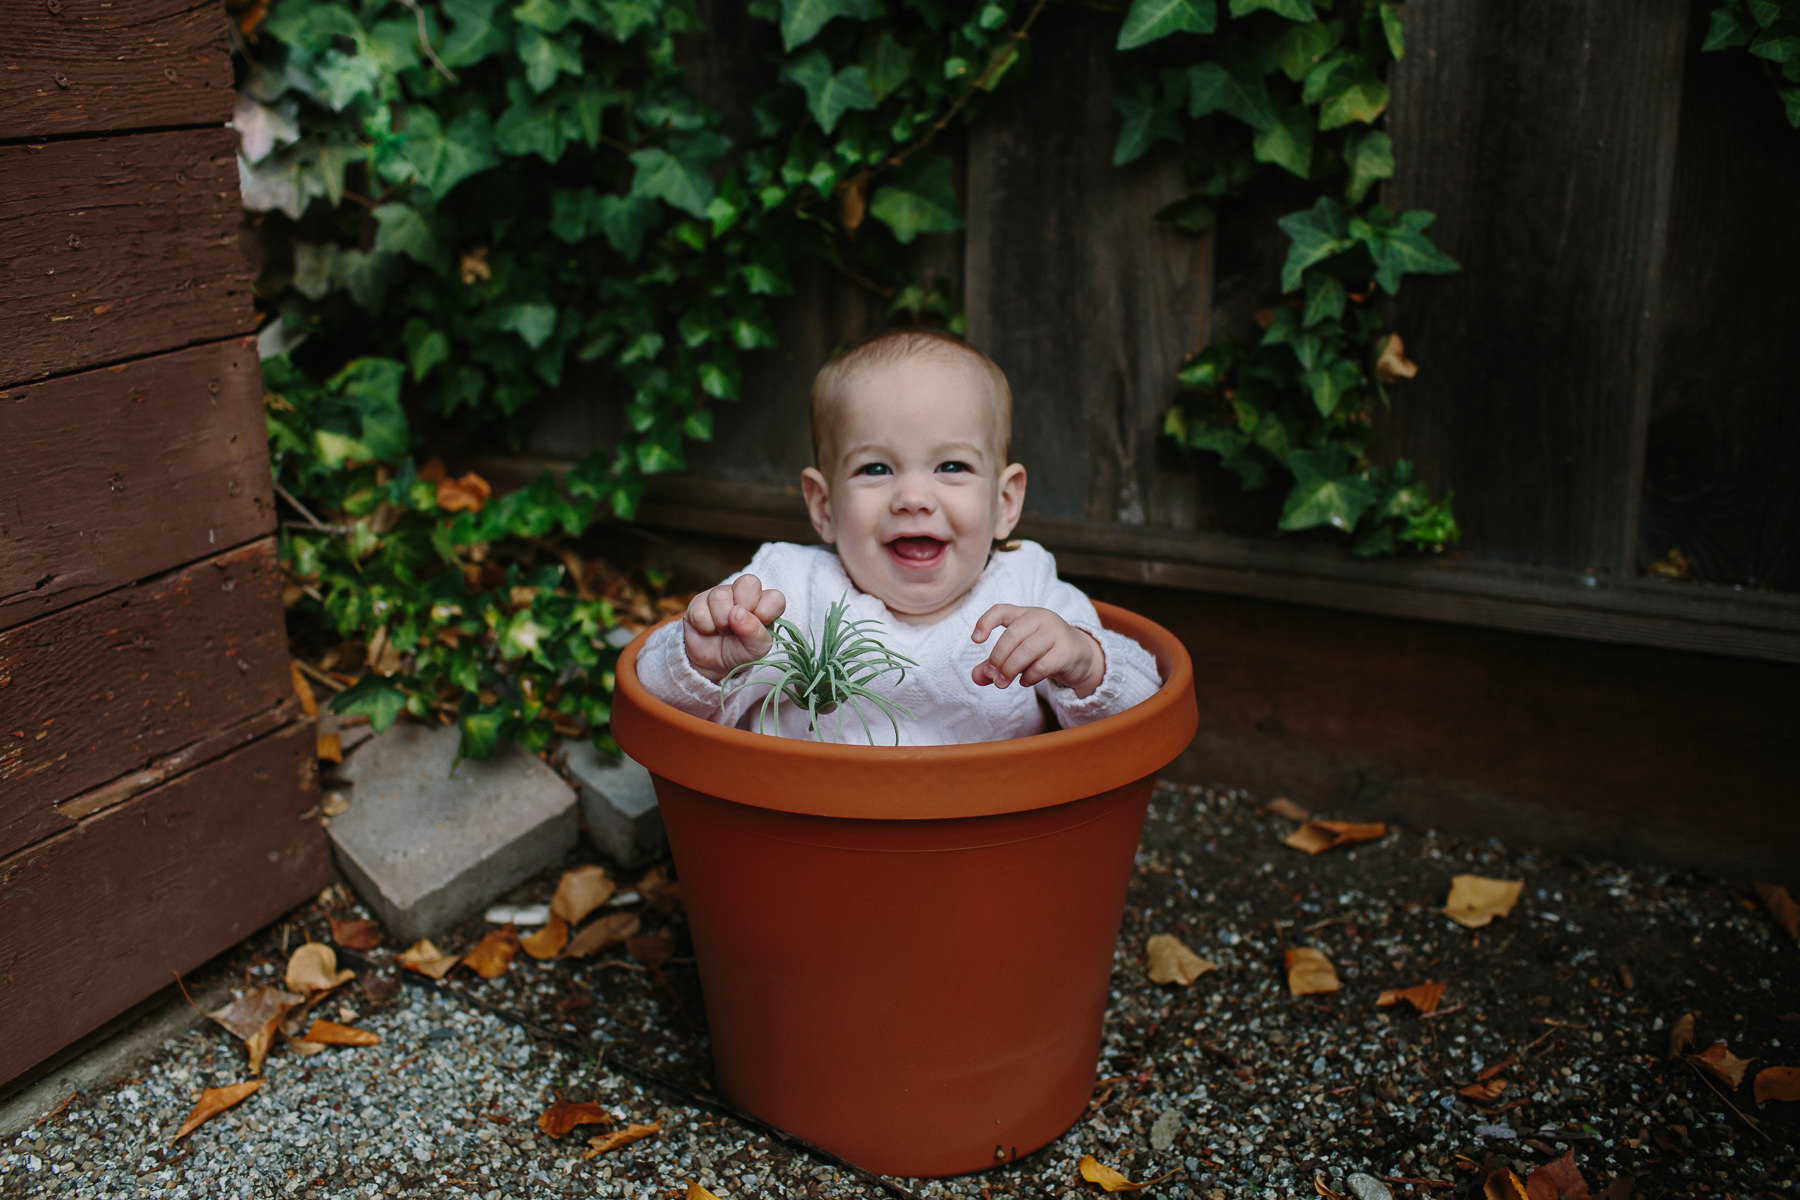 the-curiosity-project-blog-halloween-plant-lady-costumes (1 of 13).jpg